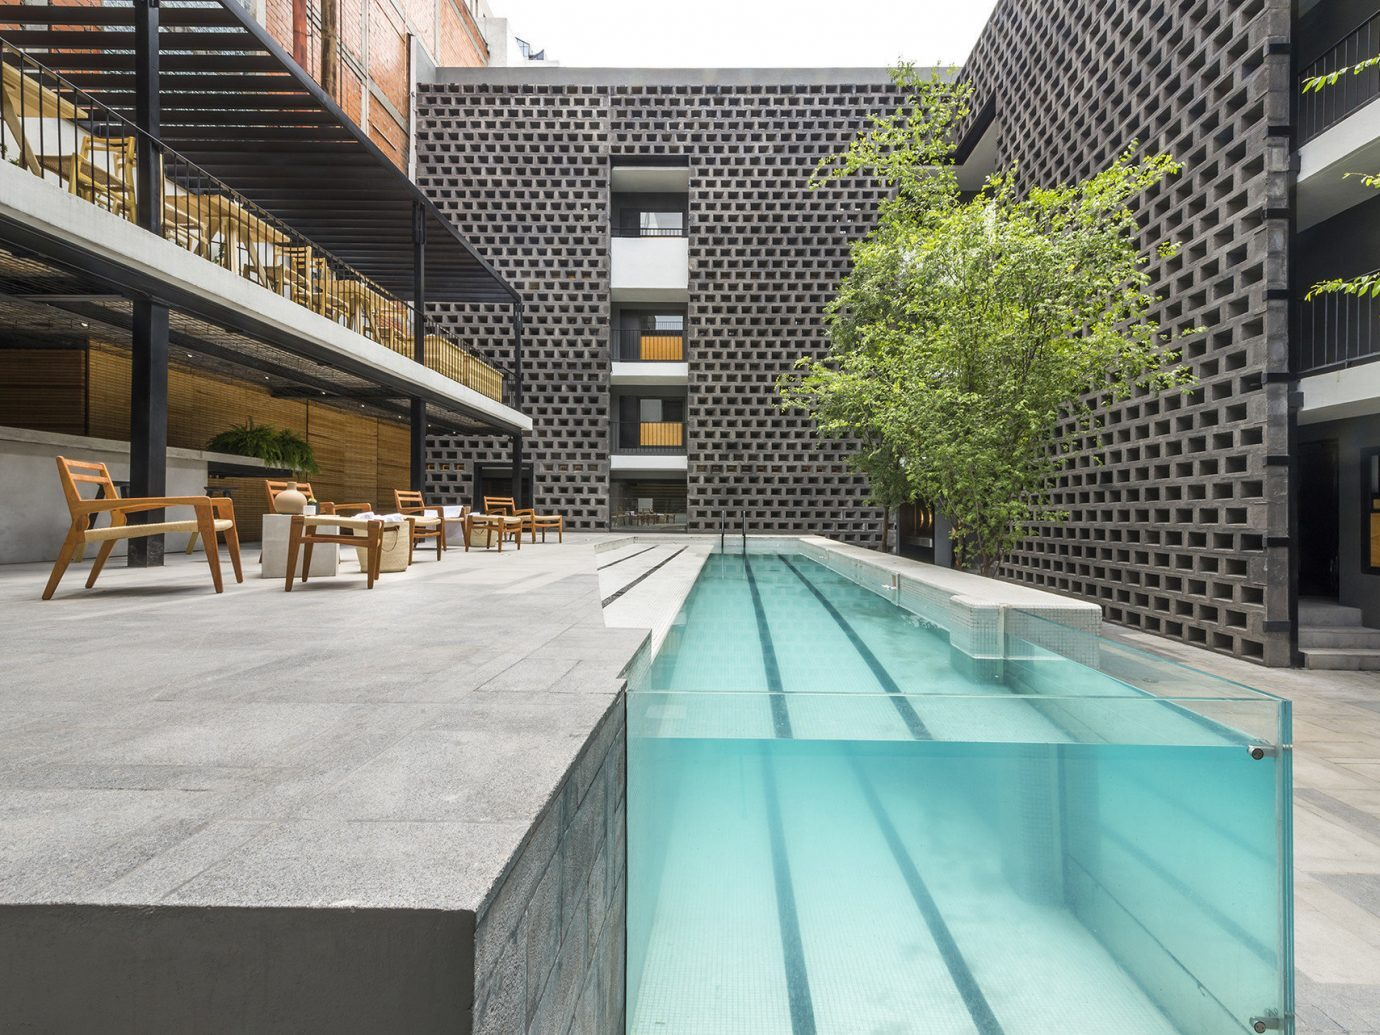 Pool at Hotel Carlota, Mexico City